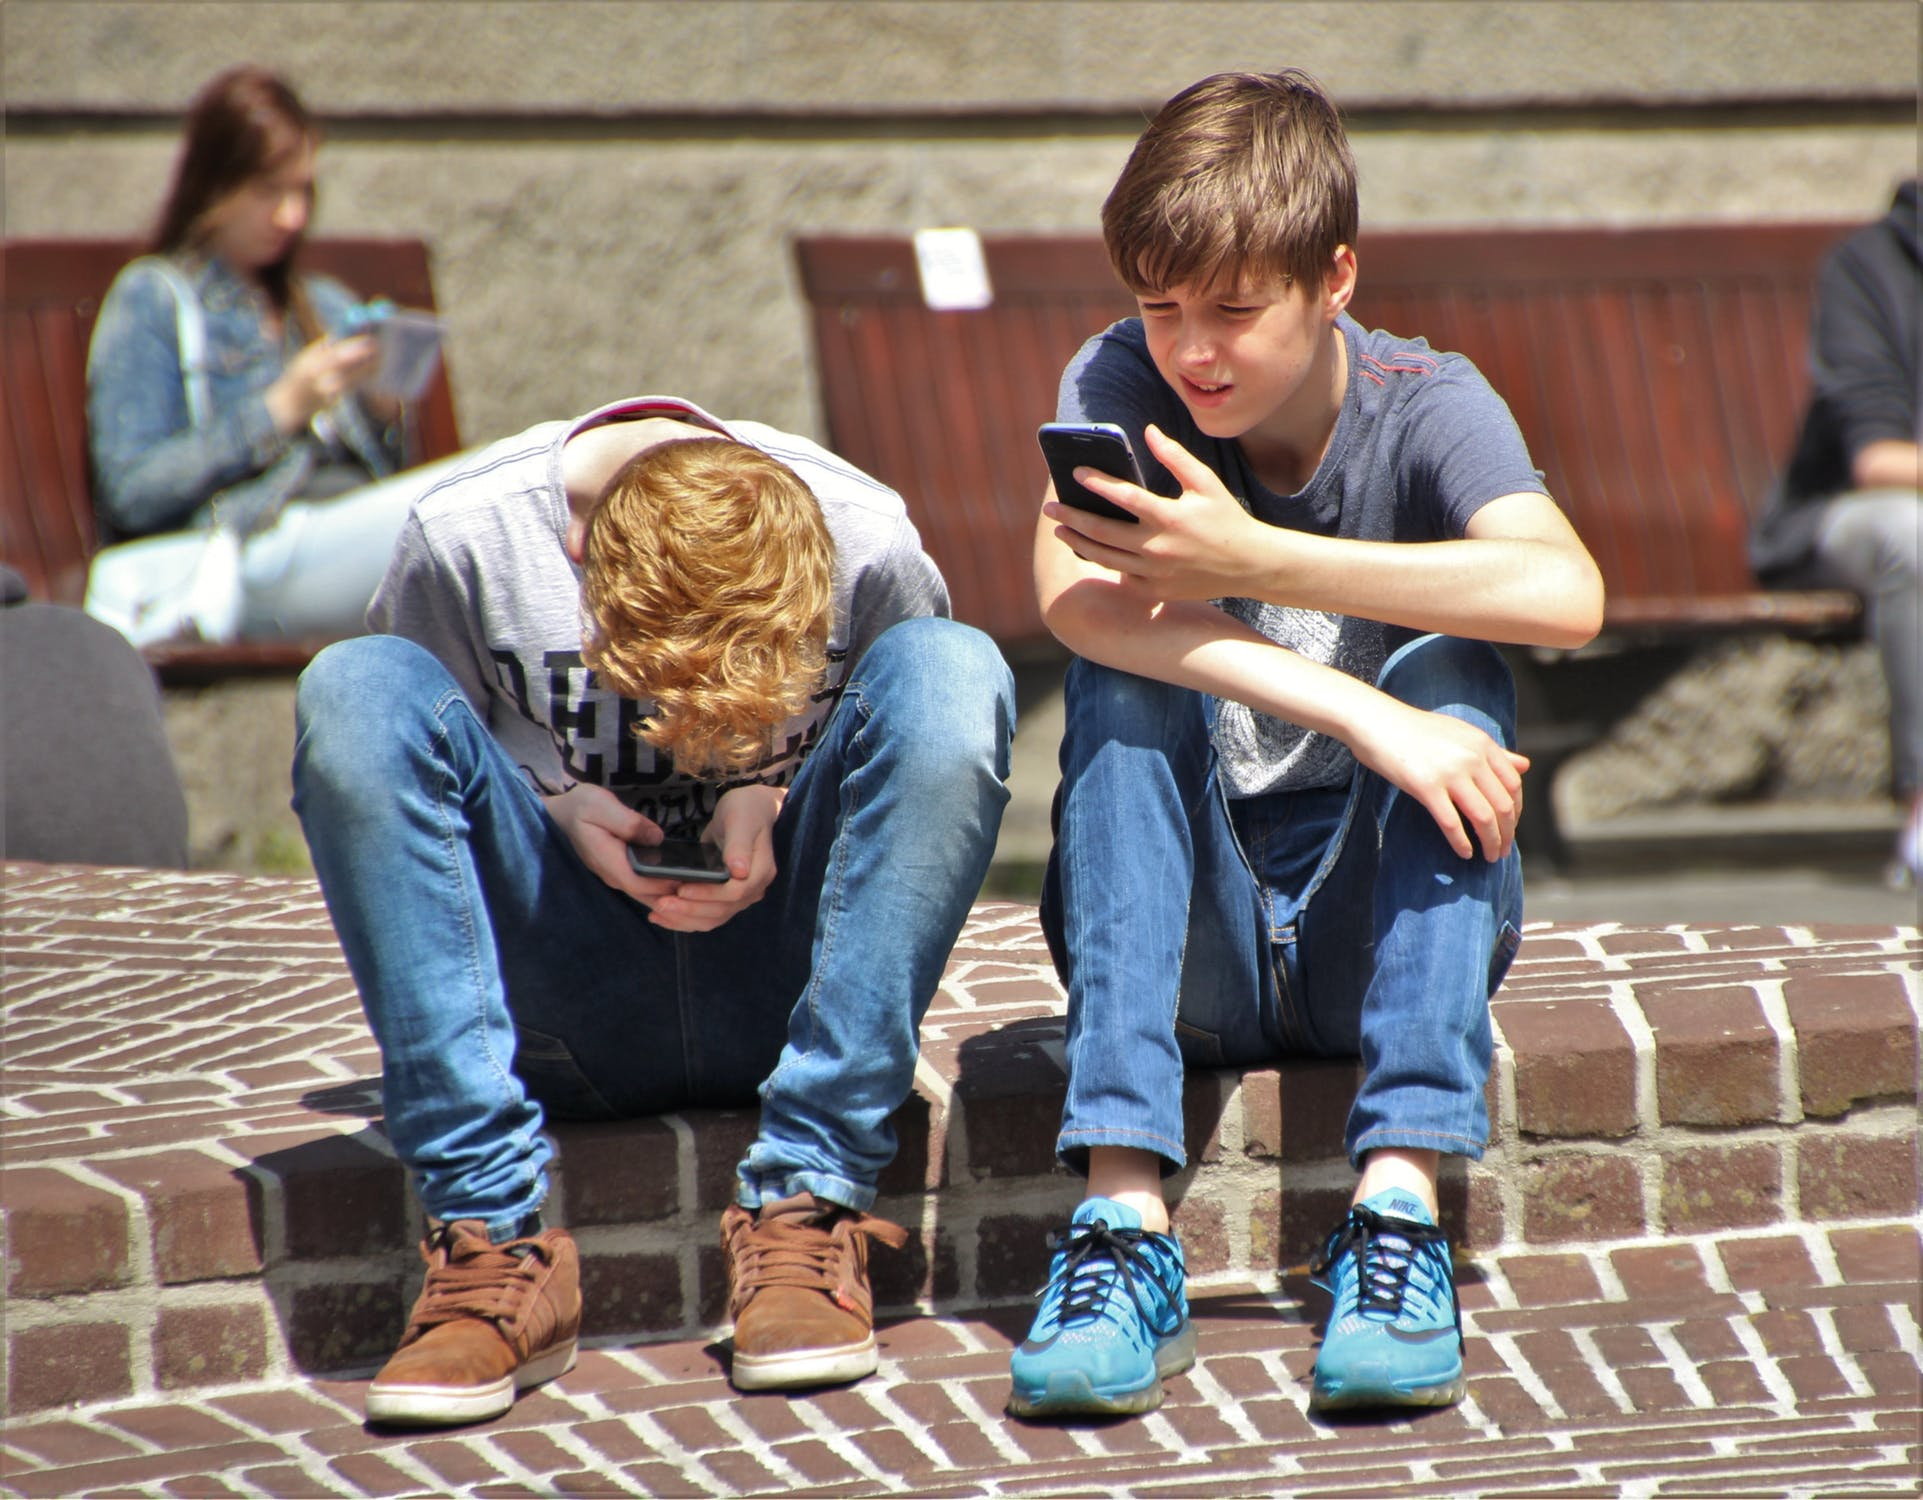 Two children sitting on their smartphones